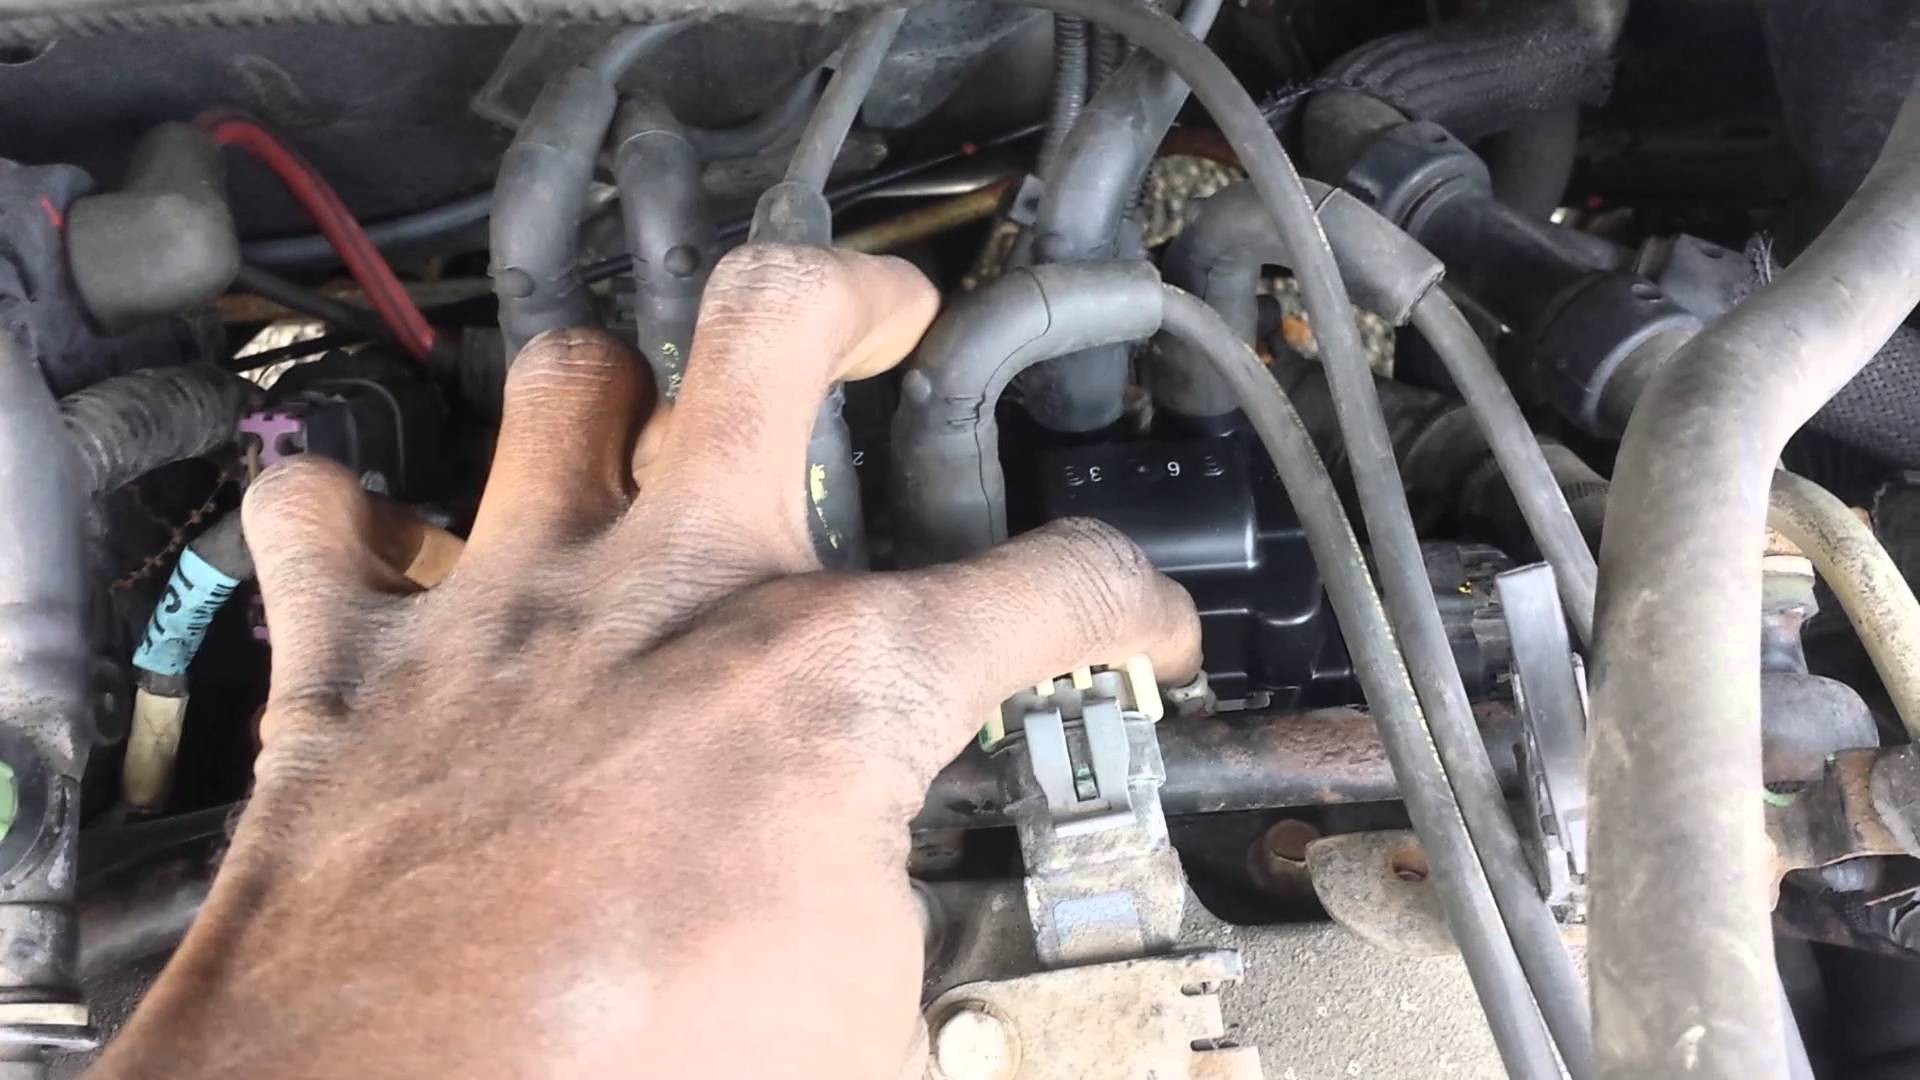 2007 Chevy Equinox Engine Diagram How to Change Coil Pack On A 2005 Chevy Equinox Of 2007 Chevy Equinox Engine Diagram